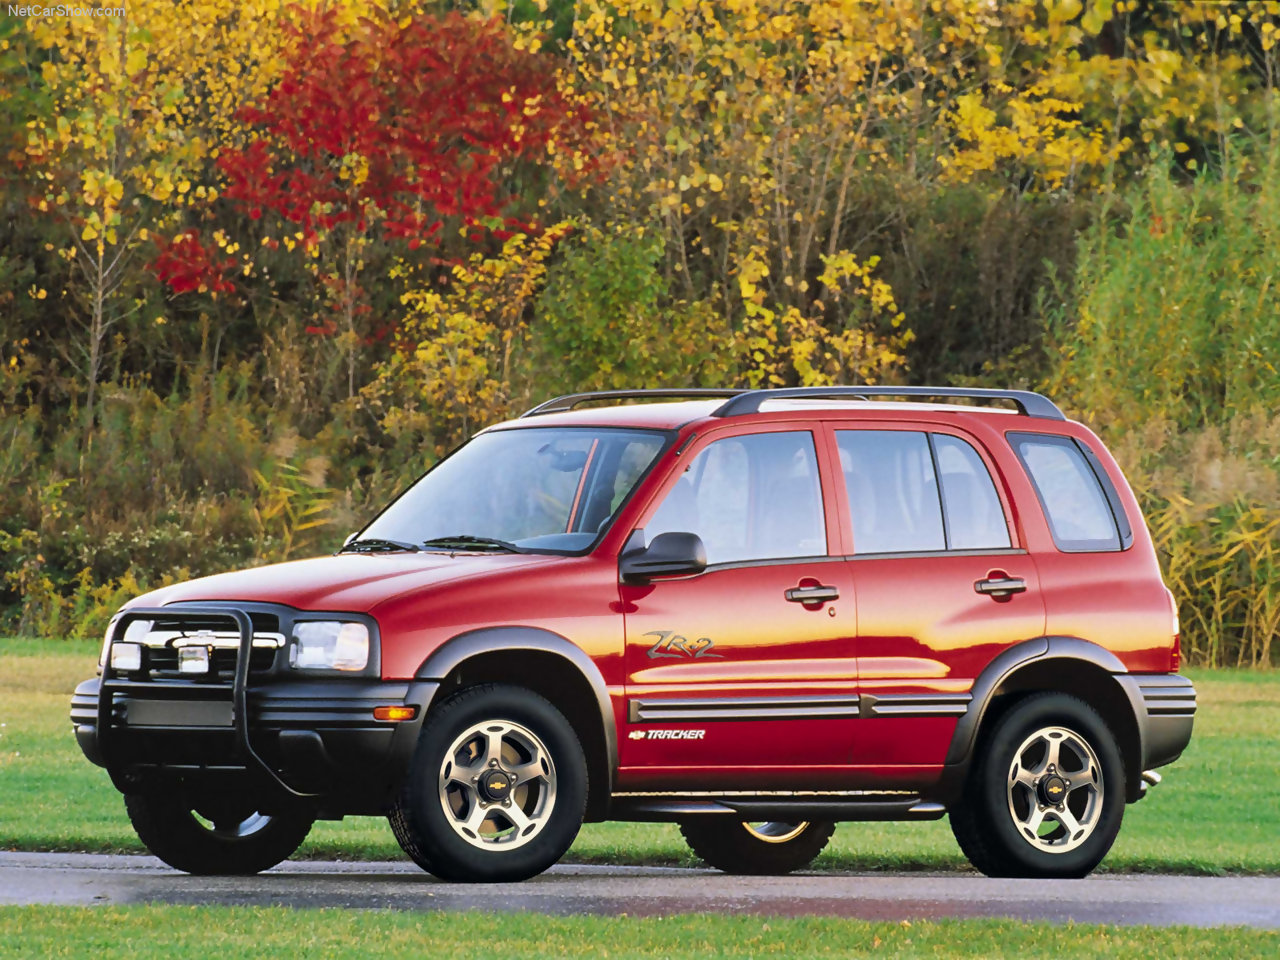 Chevrolet tracker 2003 photo - 5